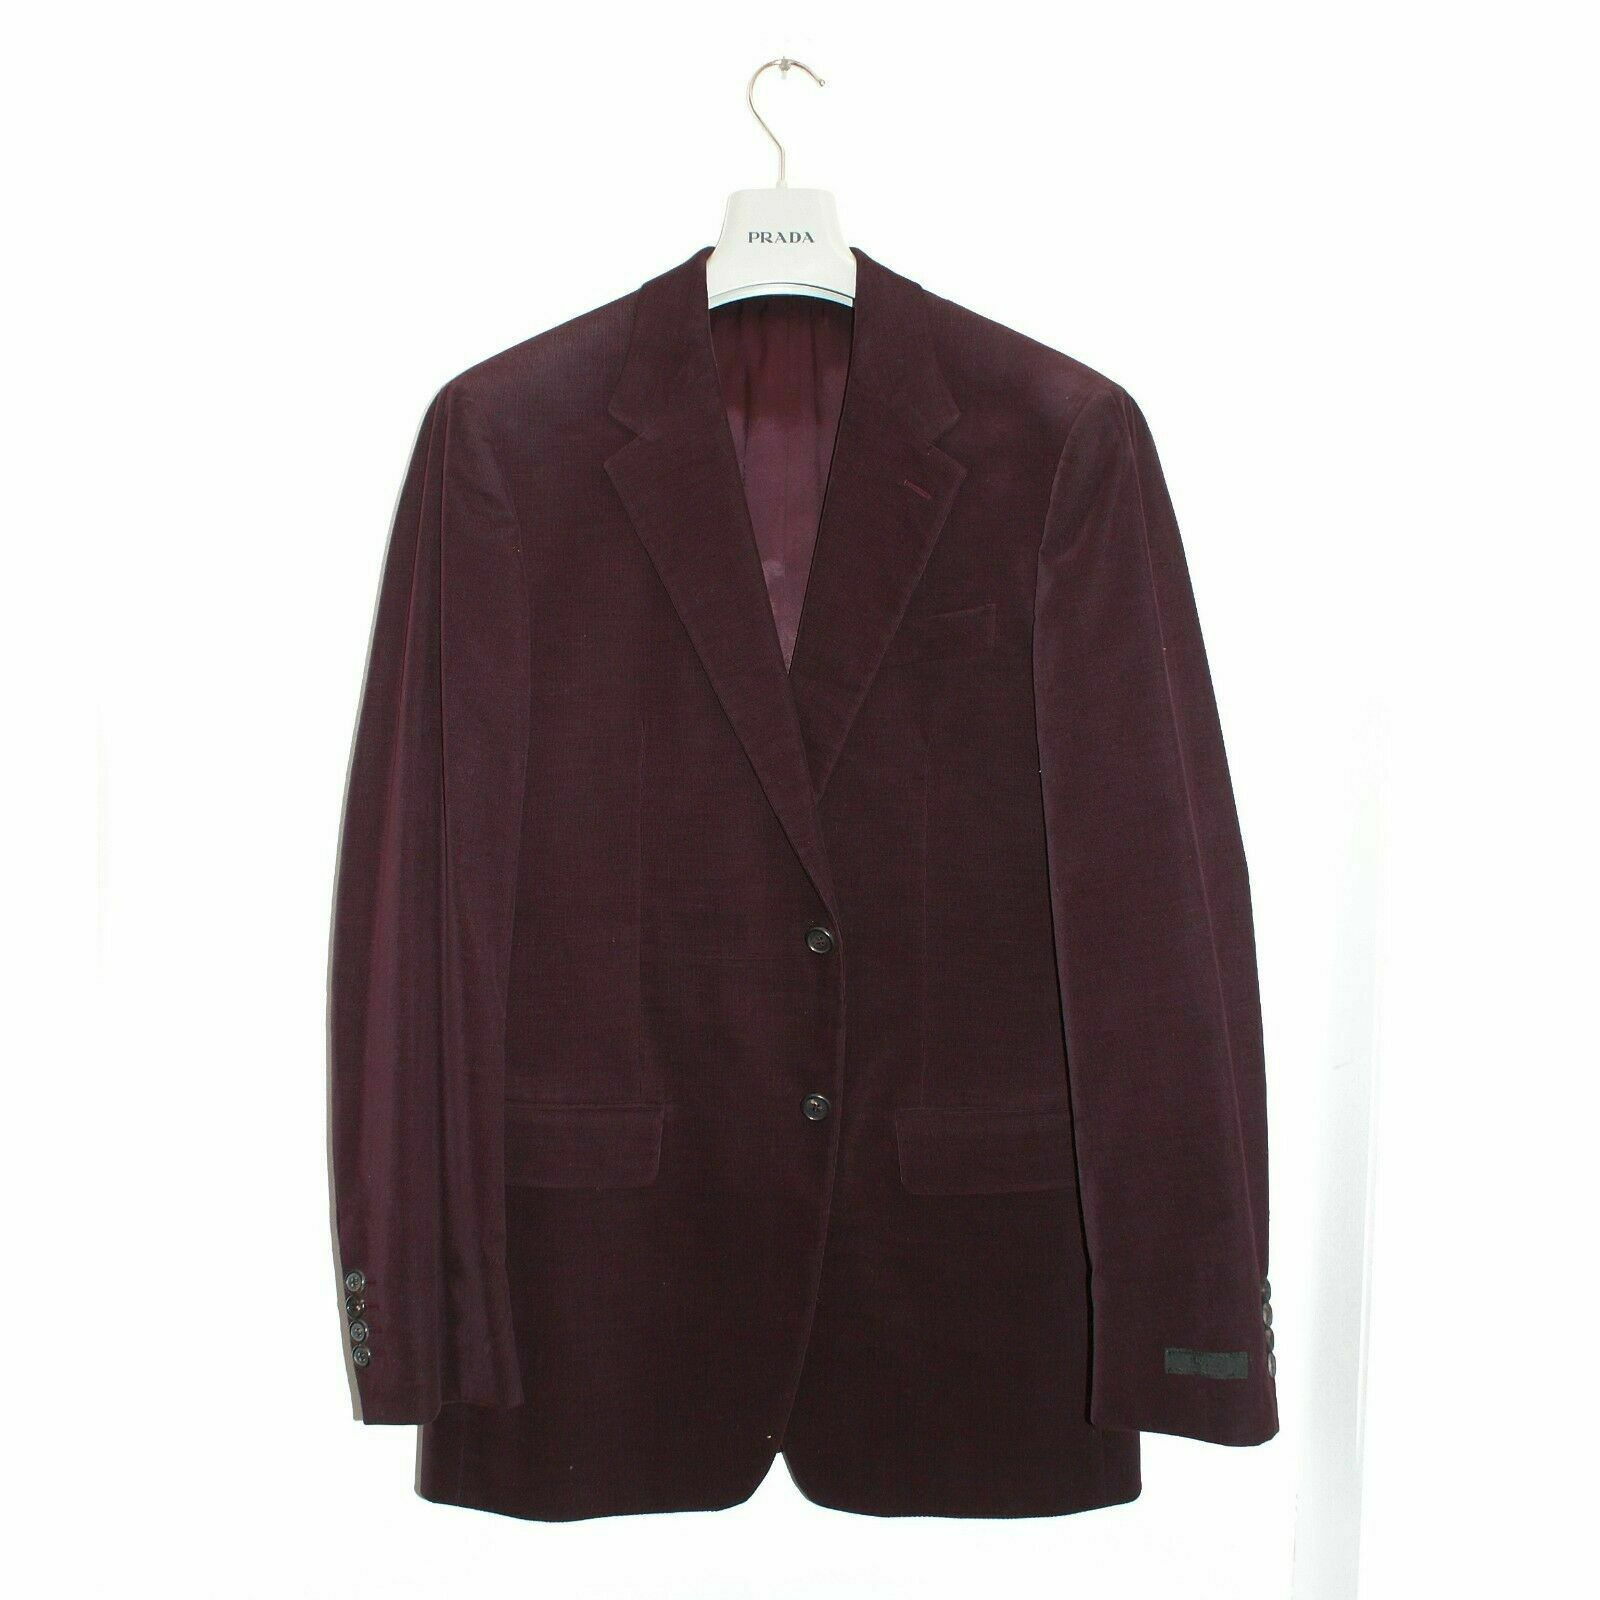 NEW Mens Prada Fine Corduroy Blazer in Bordeaux Size 50R BNWT RRP £720 Smart